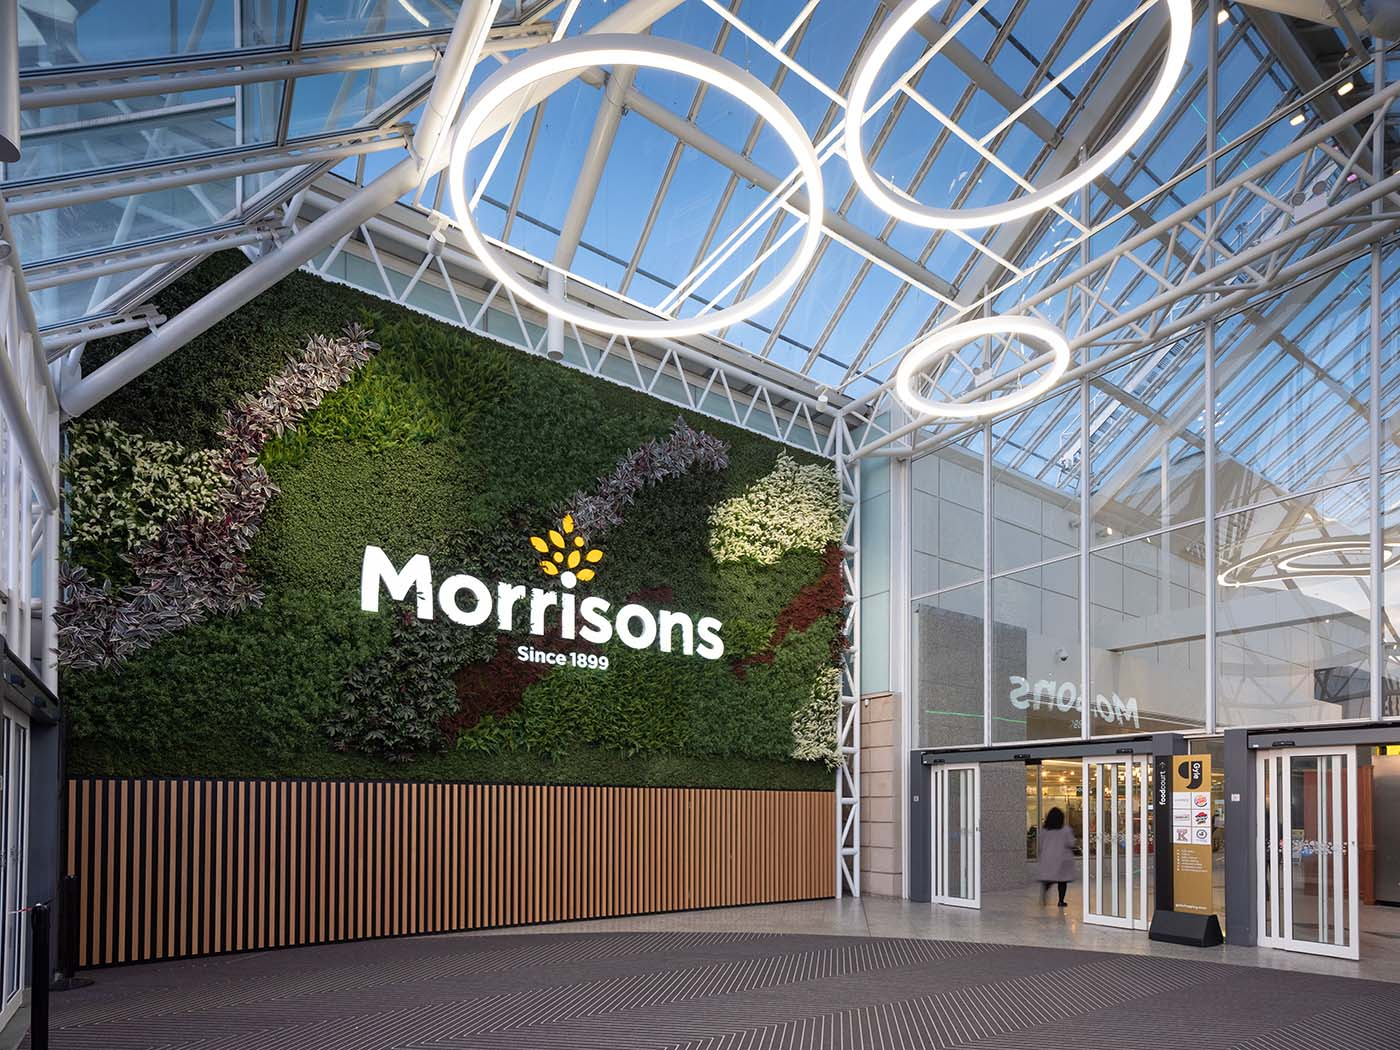 Huge green wall with Morrisons branding at Gyle Shopping Centre Edinburgh planted with artificial plants and Nordik Moss